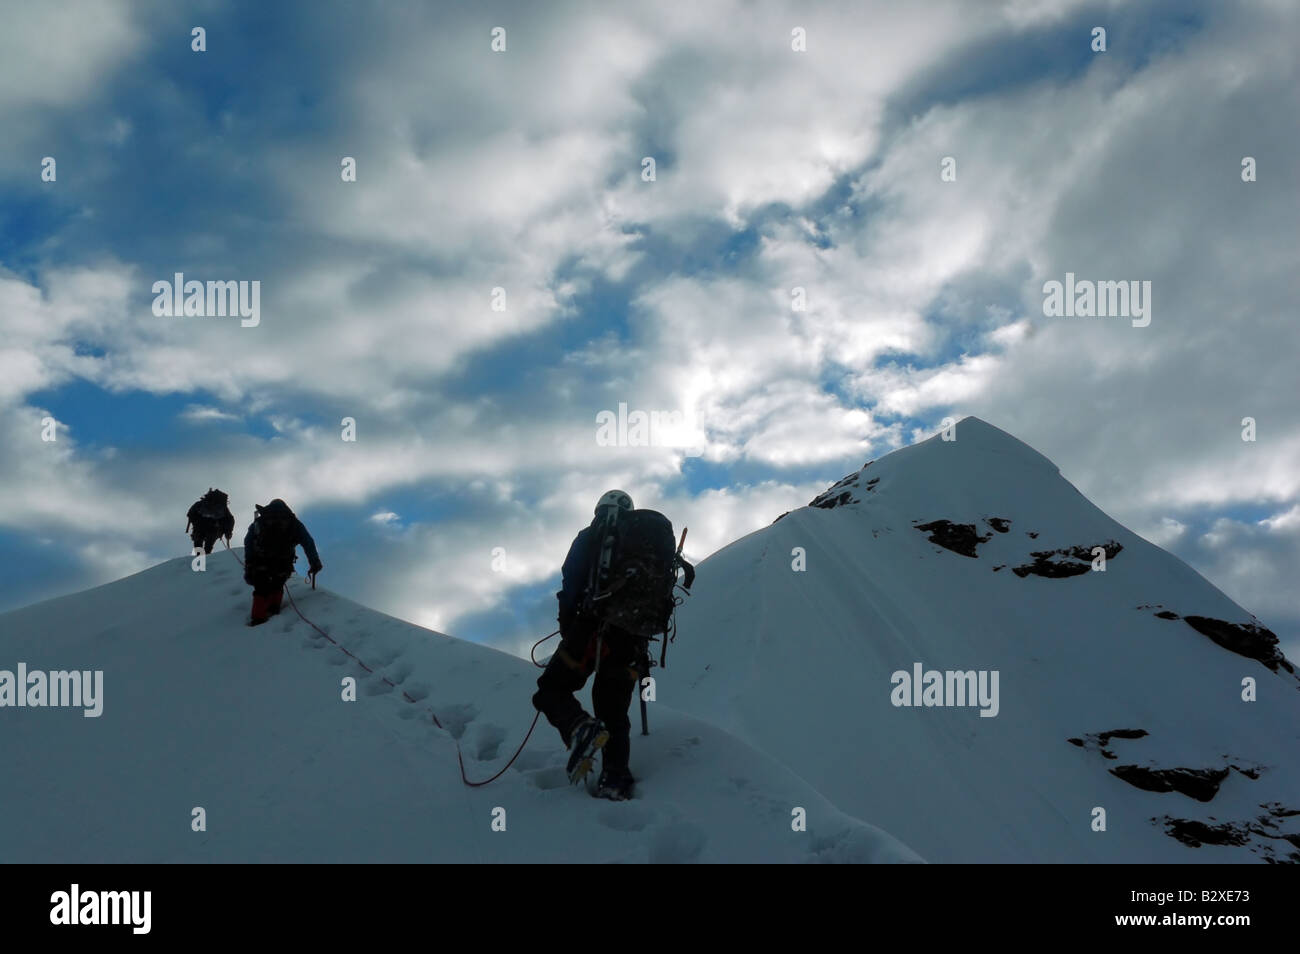 Climbers on the way to the second summit of Pequeno Alpamayo, part of Bolivia's Cordillera Real - Stock Image